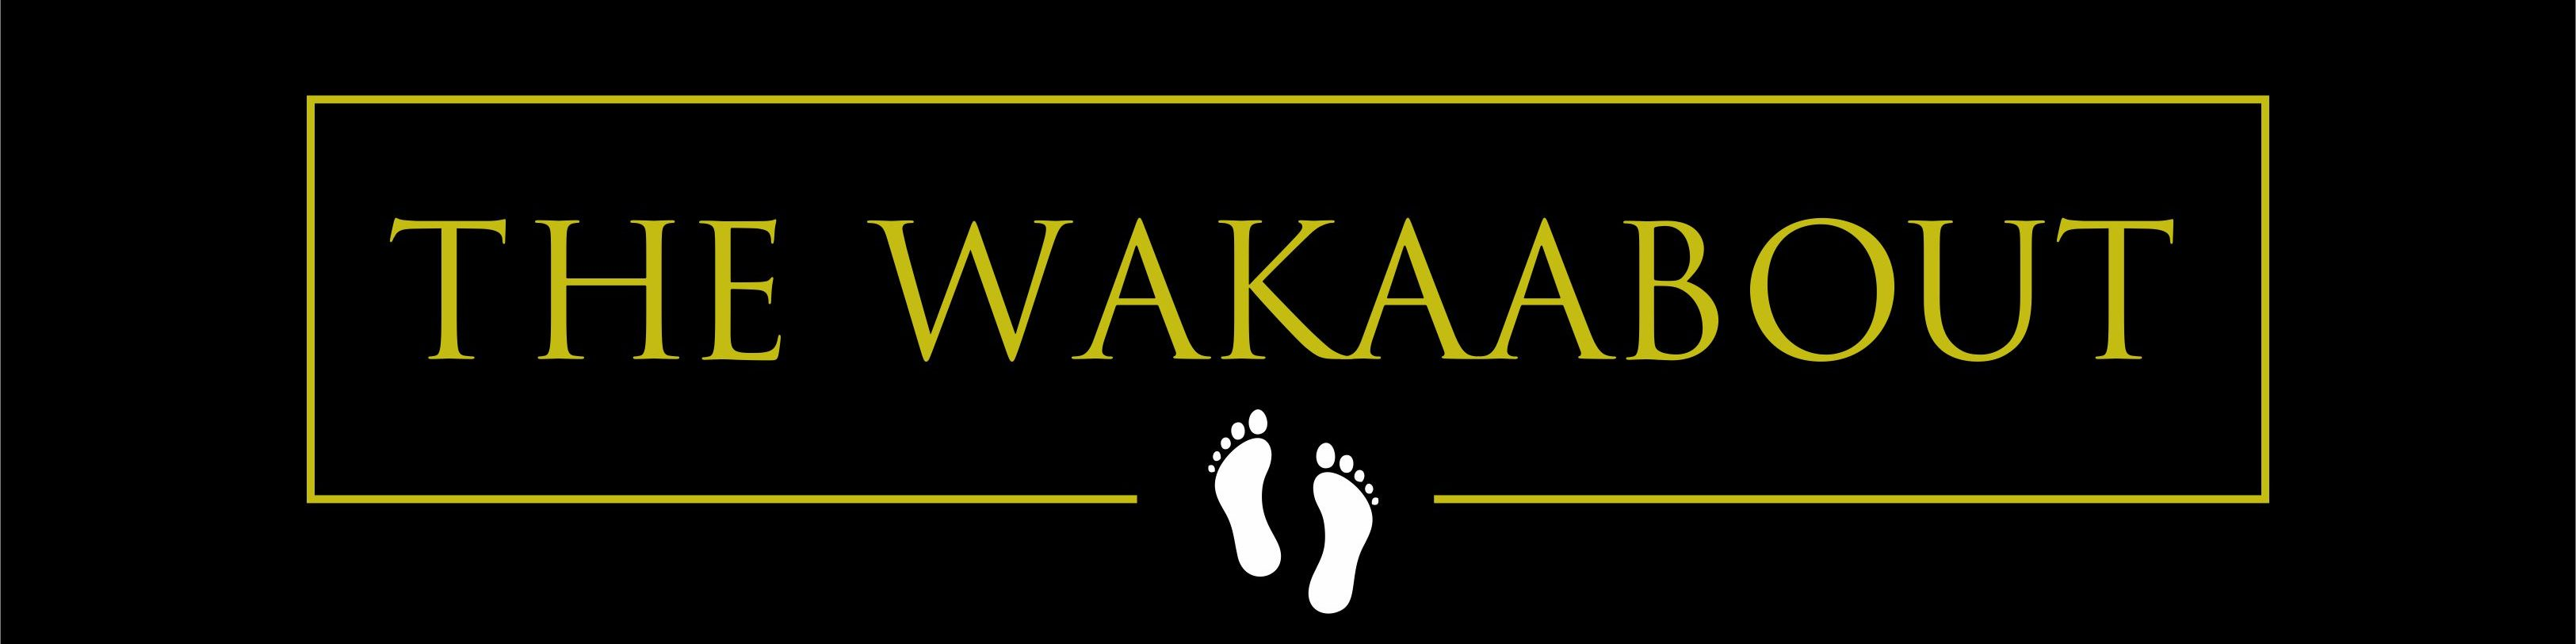 The Wakaabout